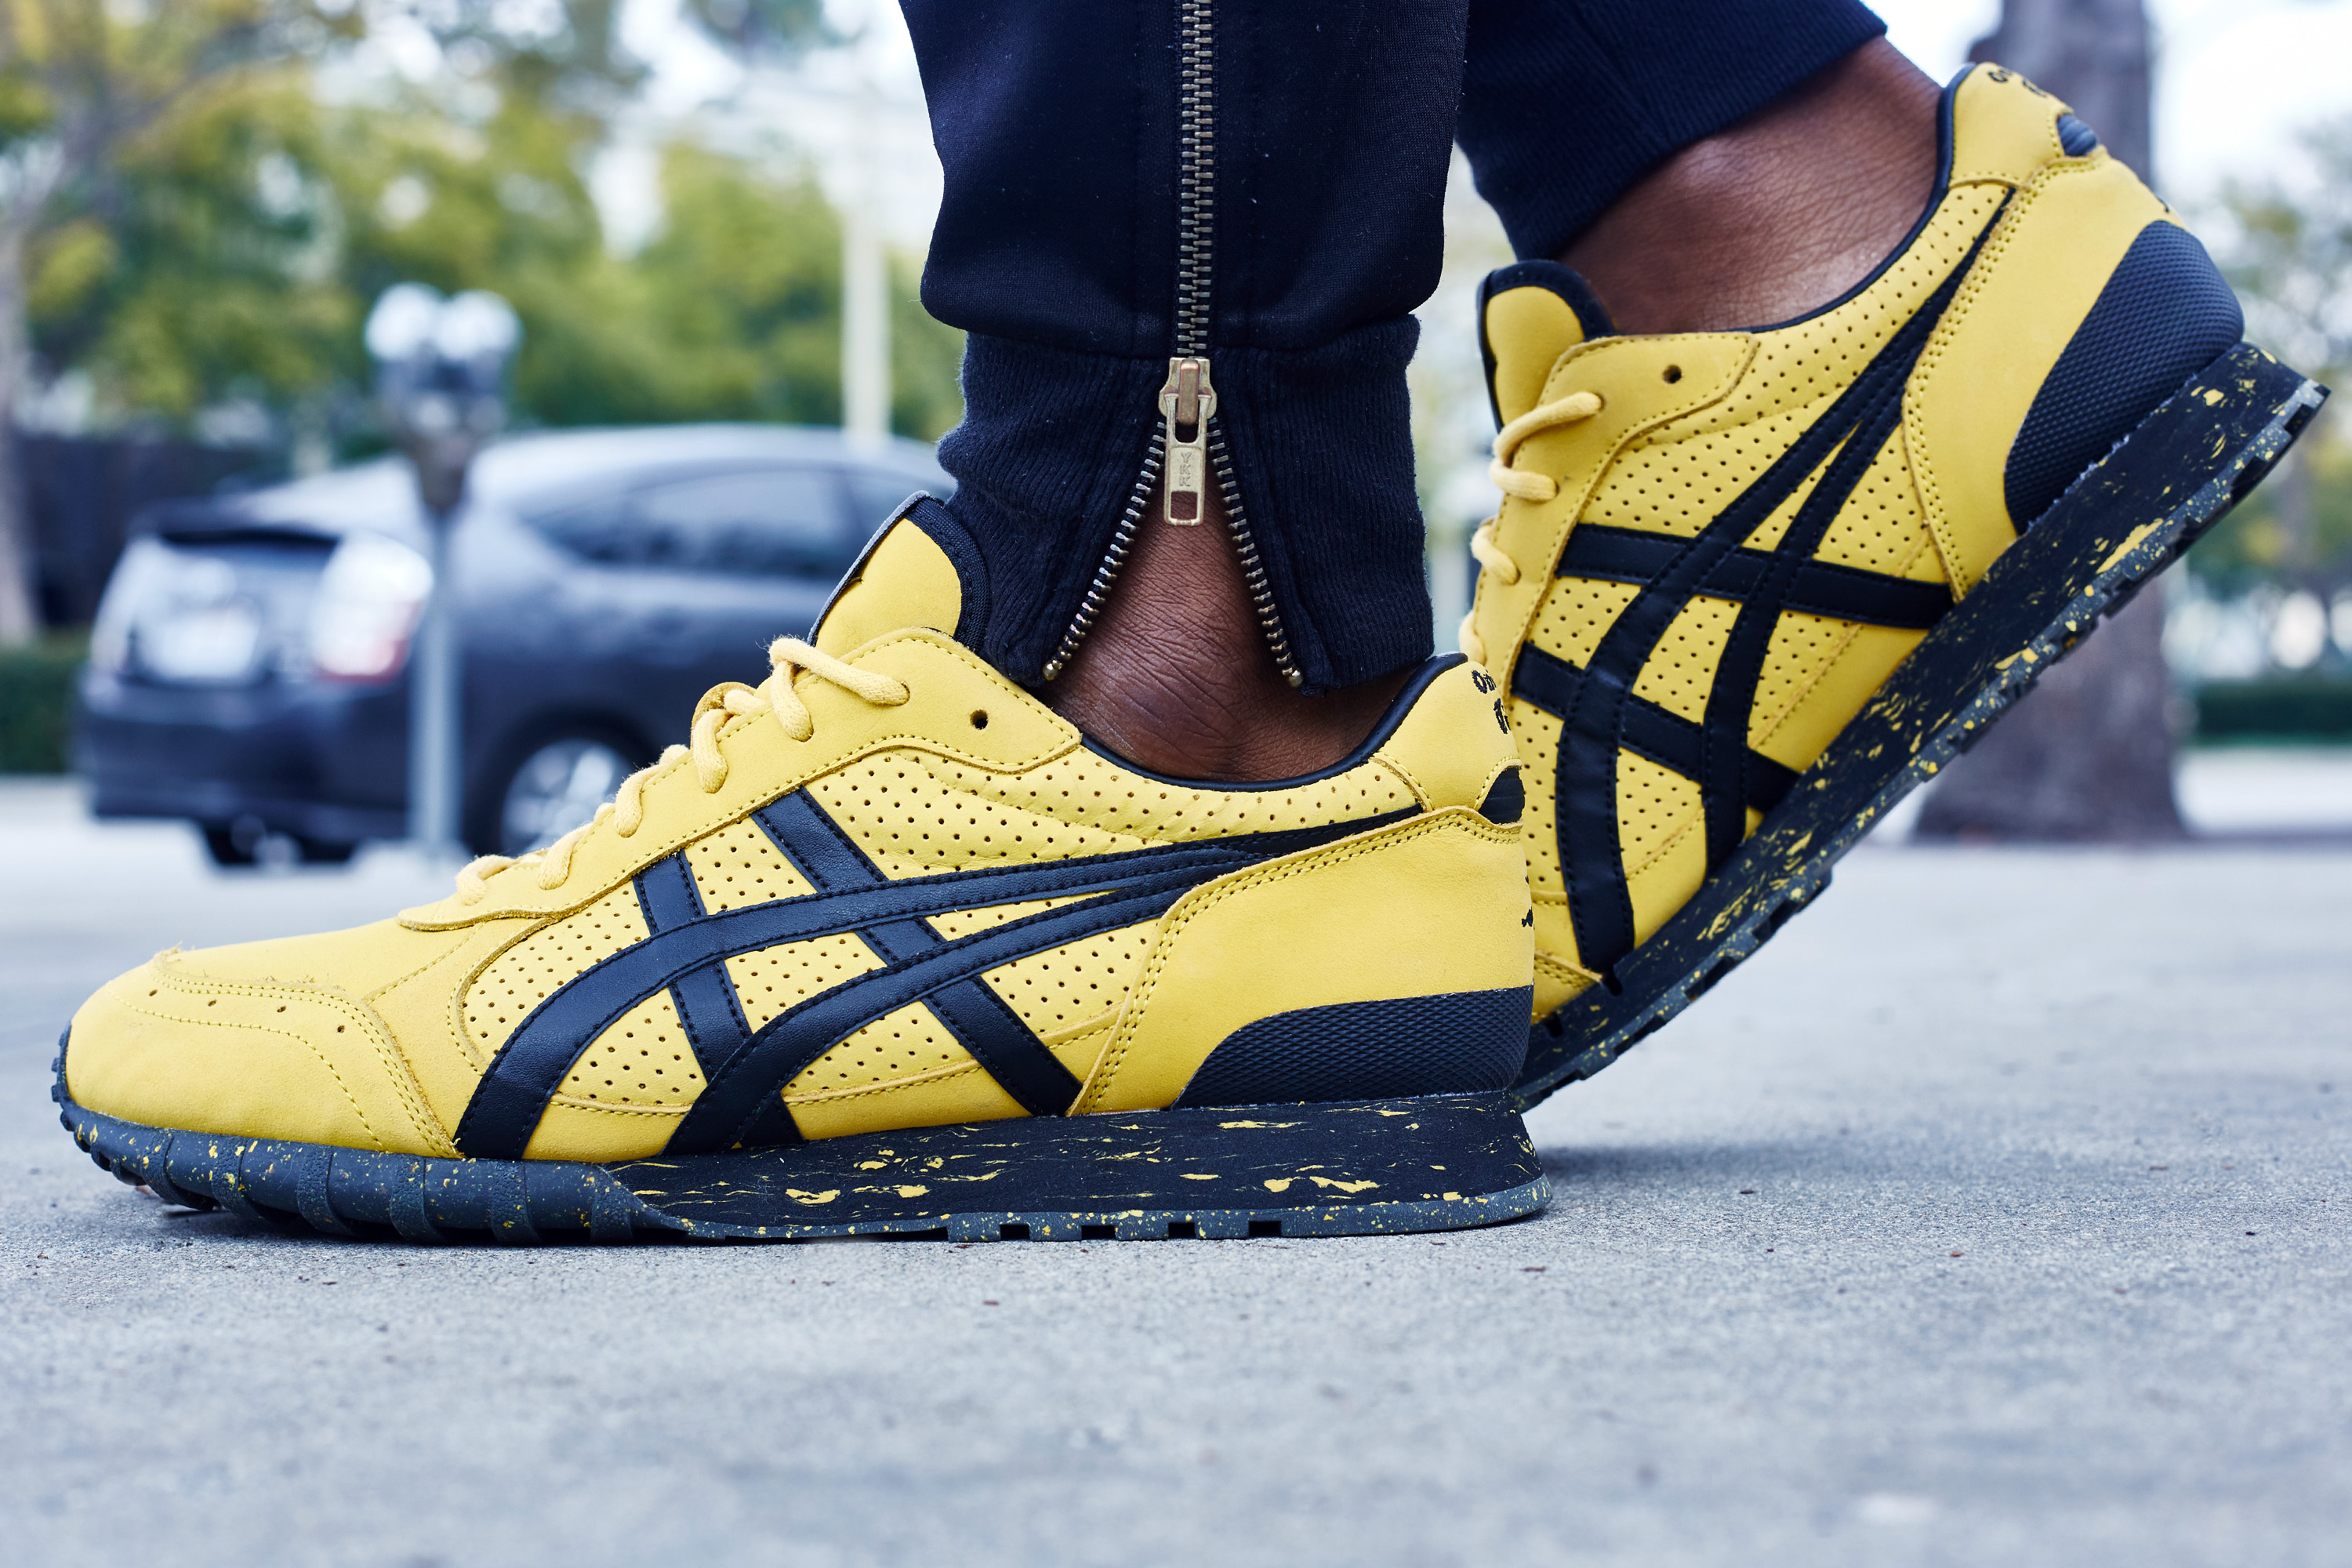 BAIT x Onitsuka Tiger x Bruce Lee Colorado 85 Legend On-Foot Look